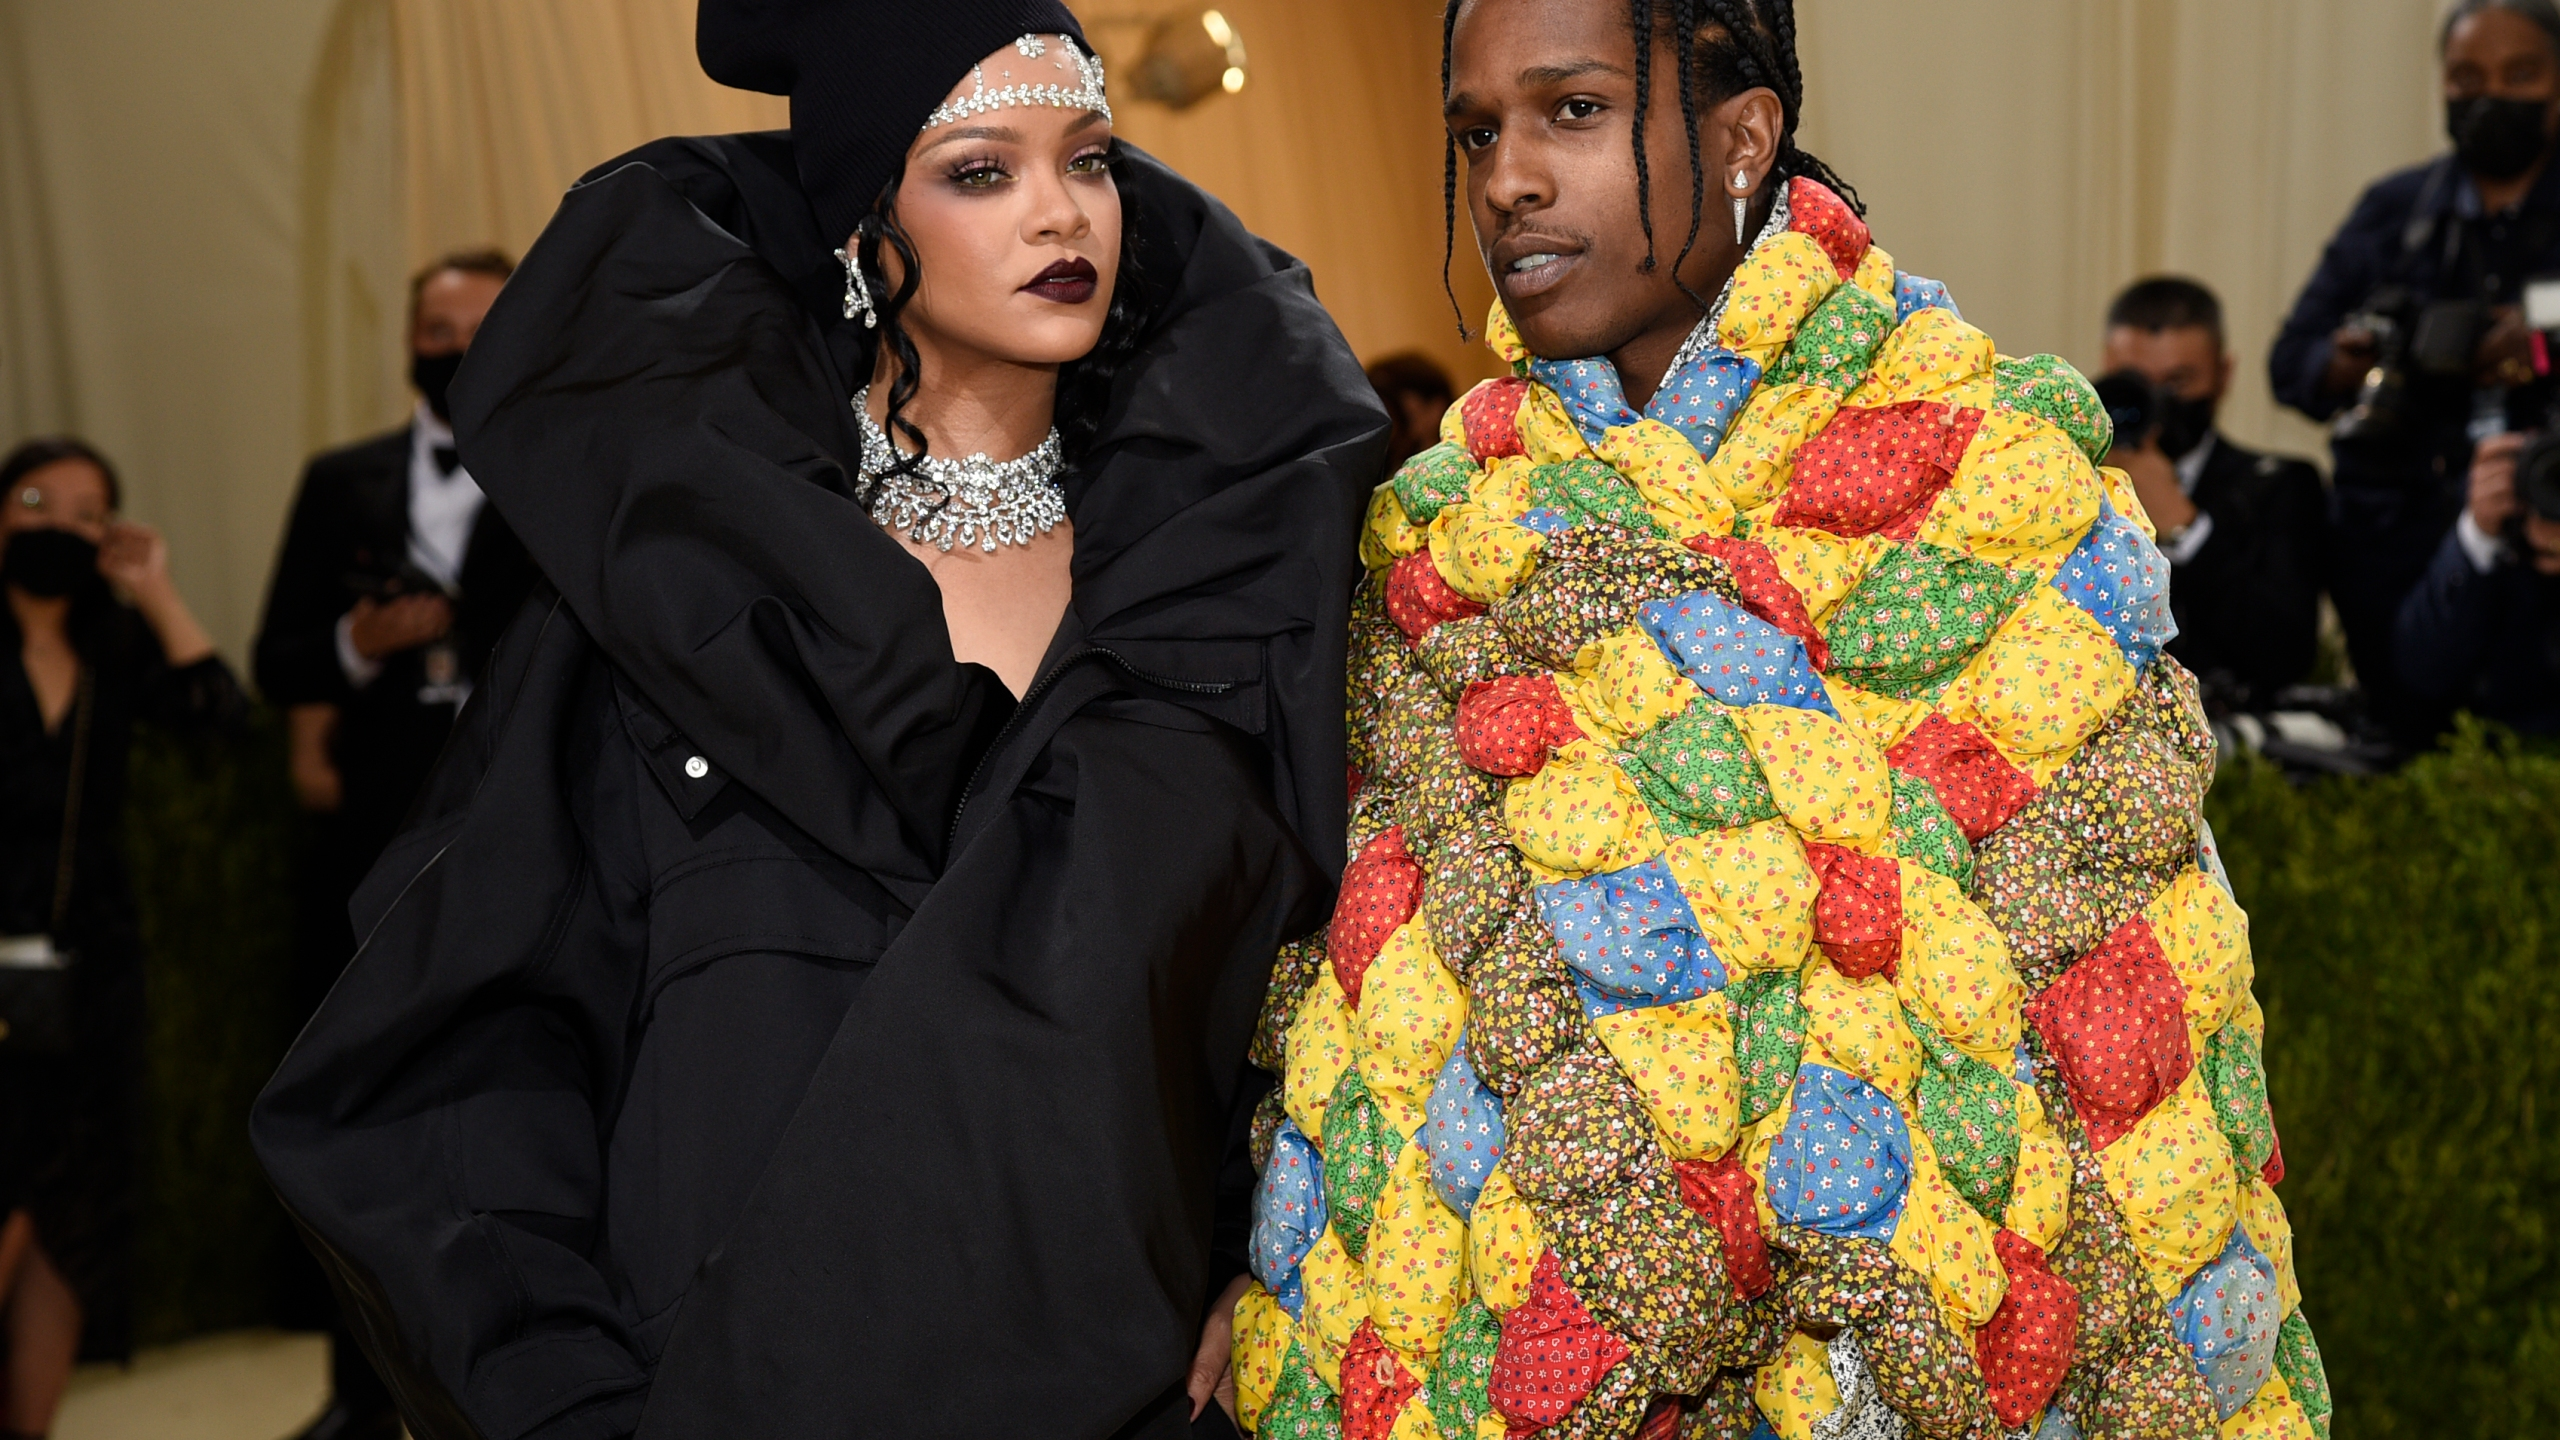 """Rihanna, left, and A$AP Rocky attend The Metropolitan Museum of Art's Costume Institute benefit gala celebrating the opening of the """"In America: A Lexicon of Fashion"""" exhibition on Sept. 13, 2021, in New York. (Evan Agostini/Invision/AP)"""